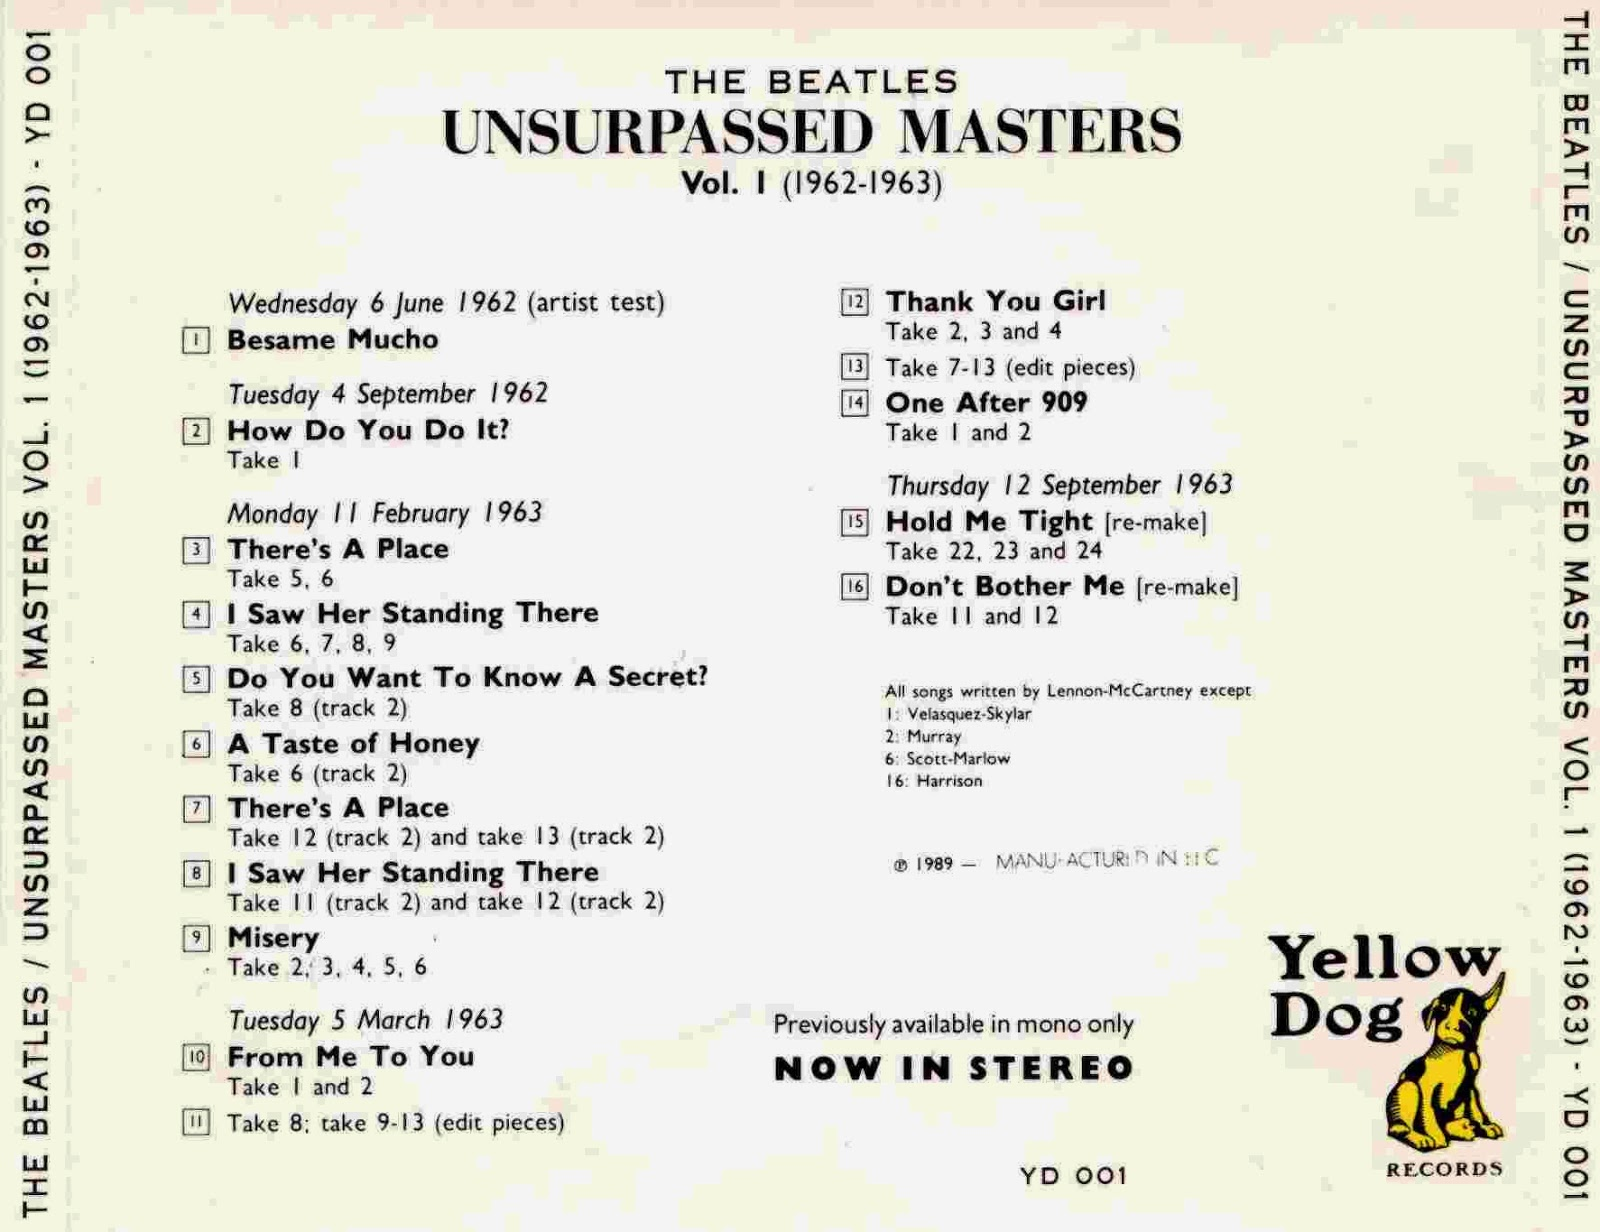 Rock Anthology: The Beatles - Unsurpassed Masters vol 1 (1962-1963